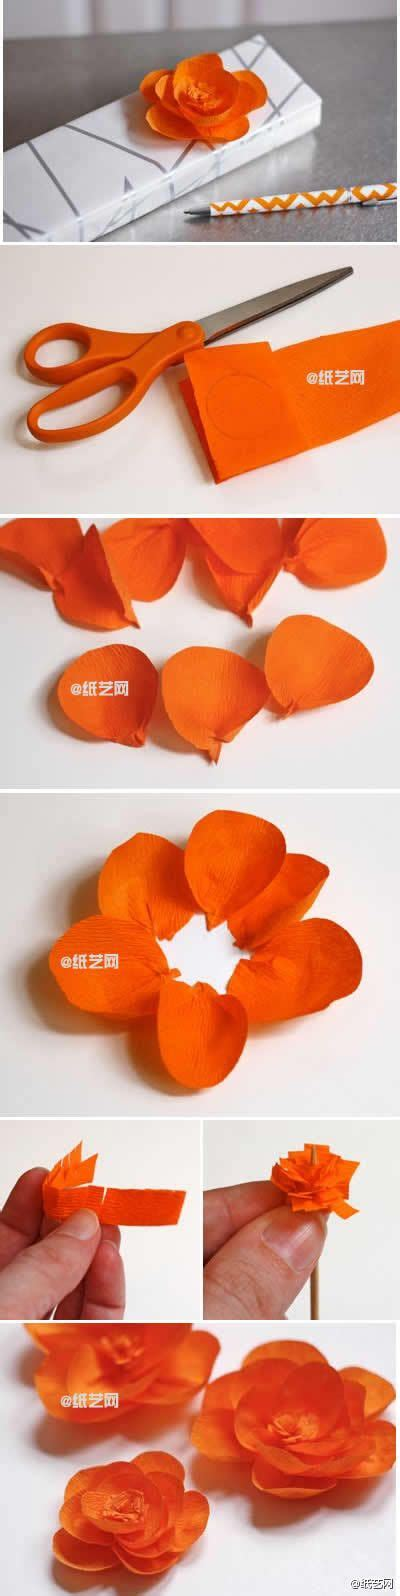 Handmade Tissue Flowers - crepe paper flowers to craft paper